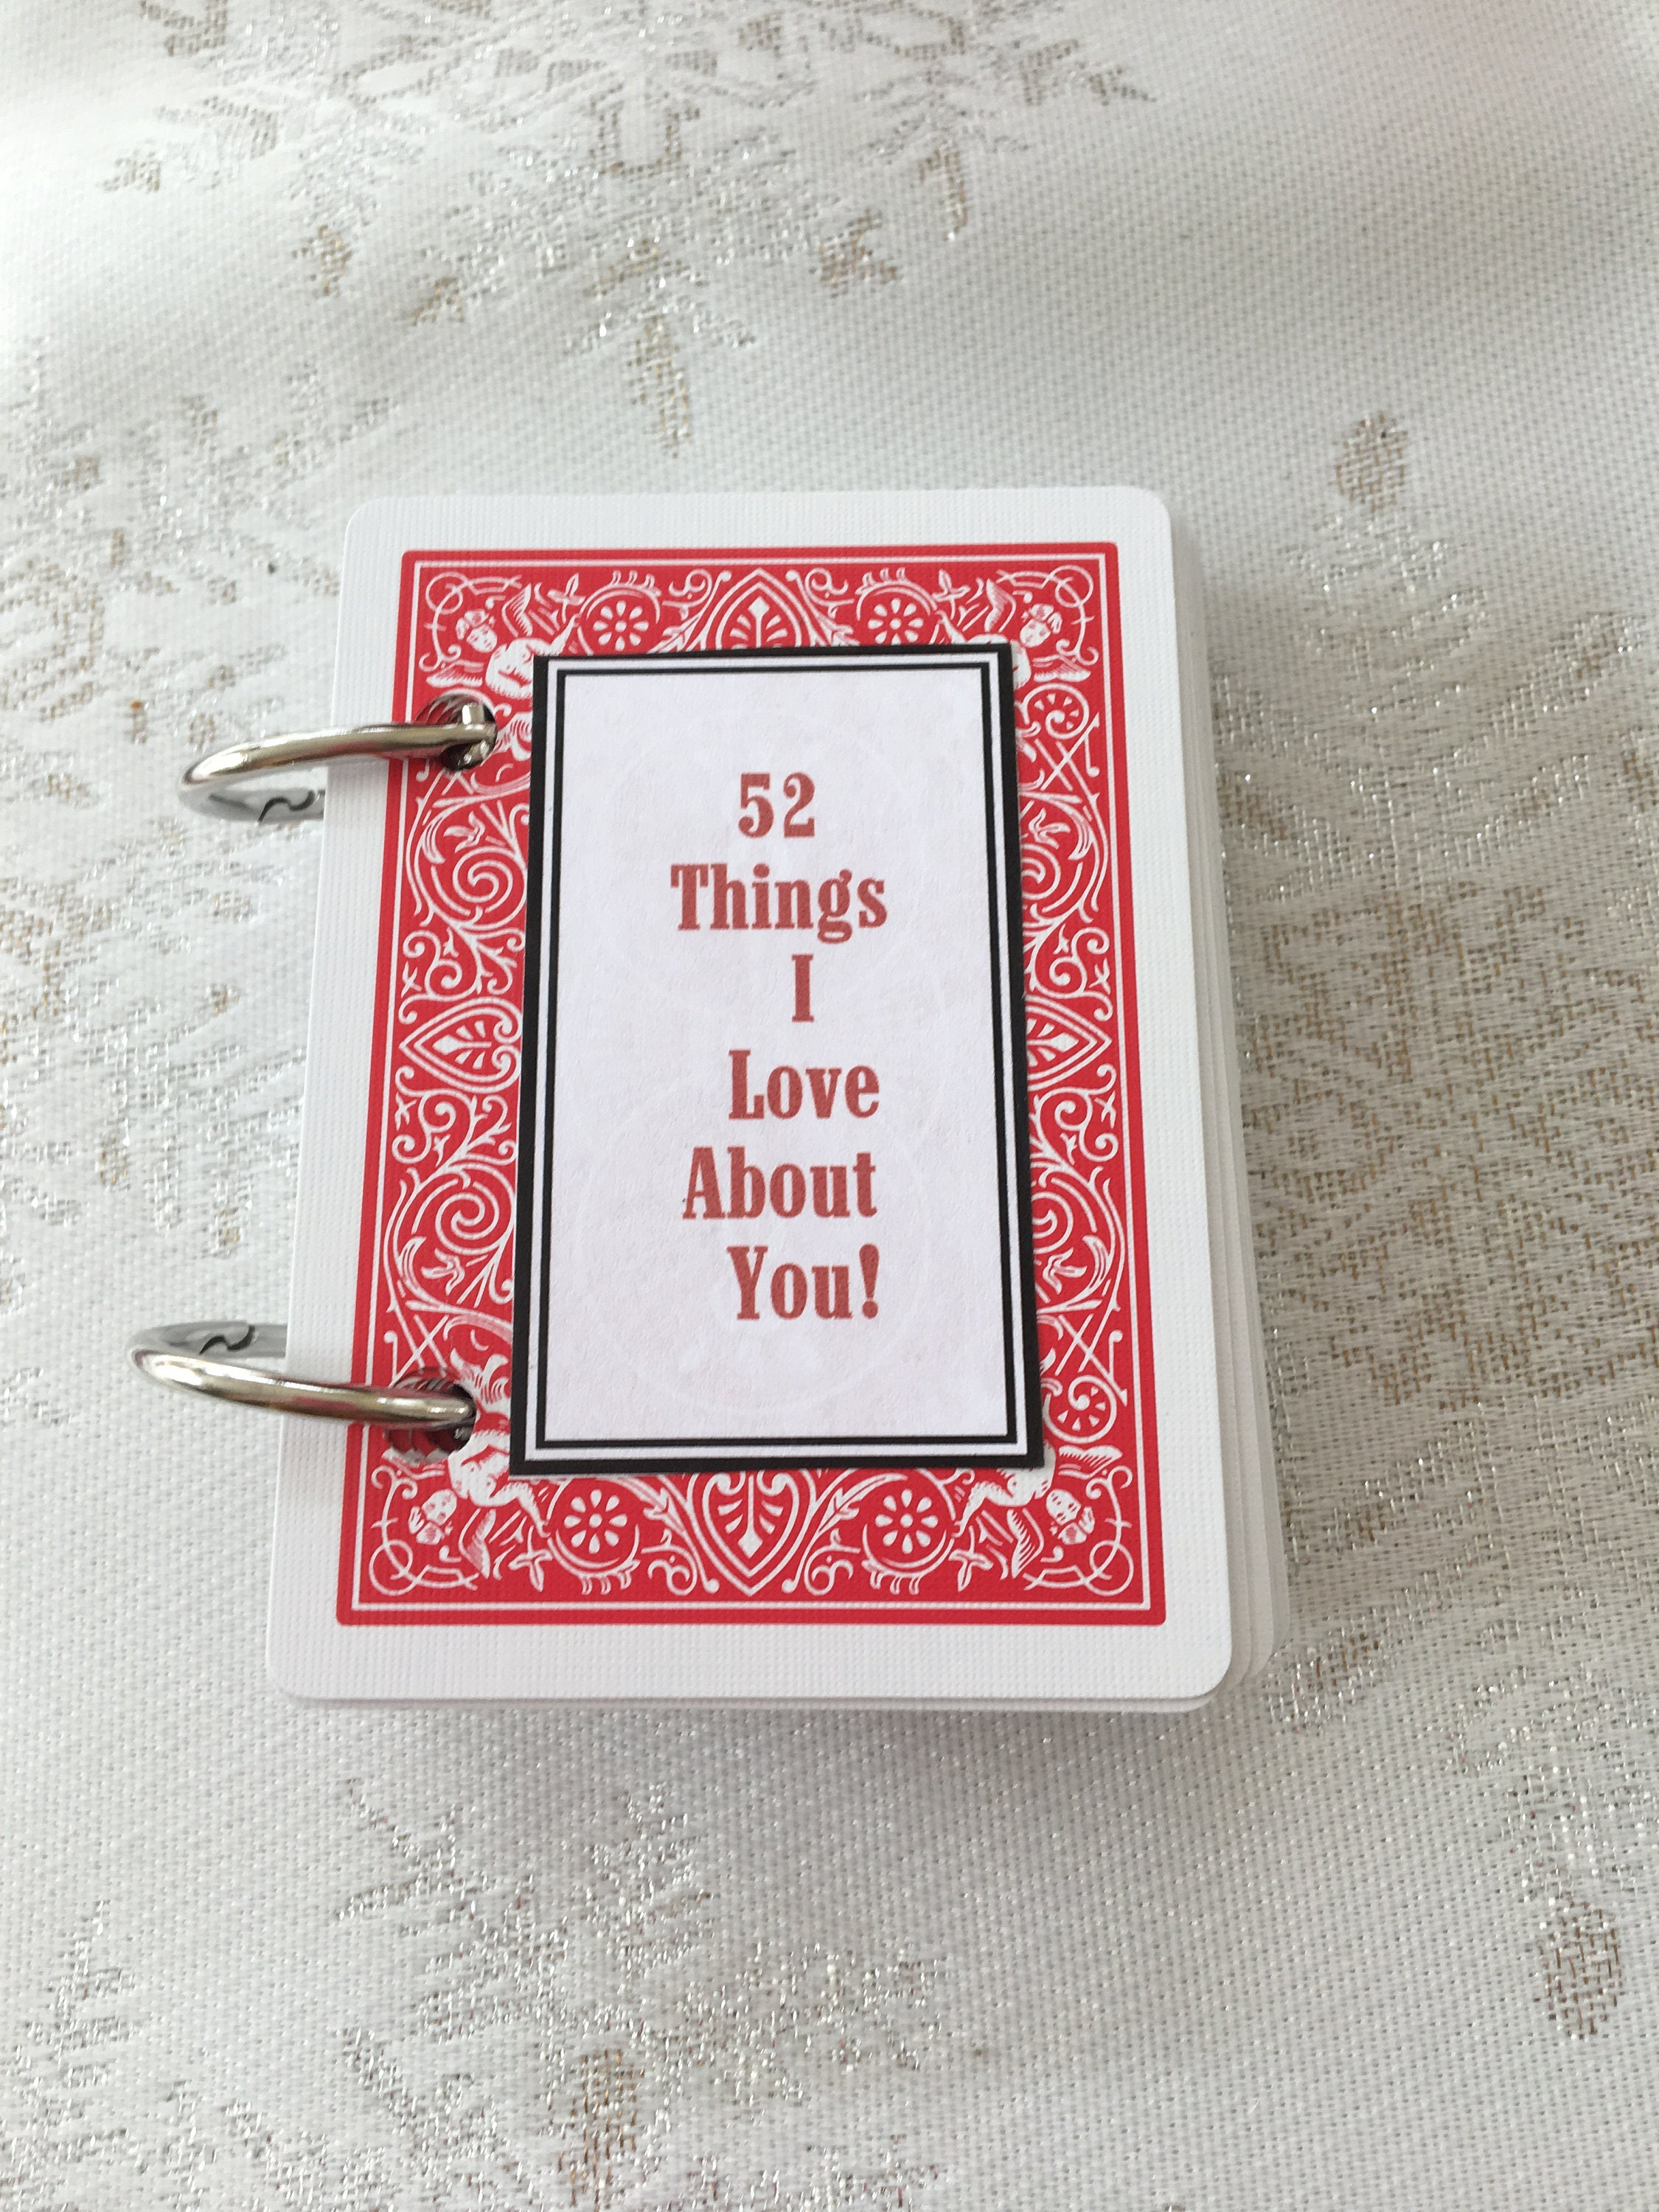 21 Things I Love About You Cards  Etsy Regarding 52 Things I Love About You Deck Of Cards Template